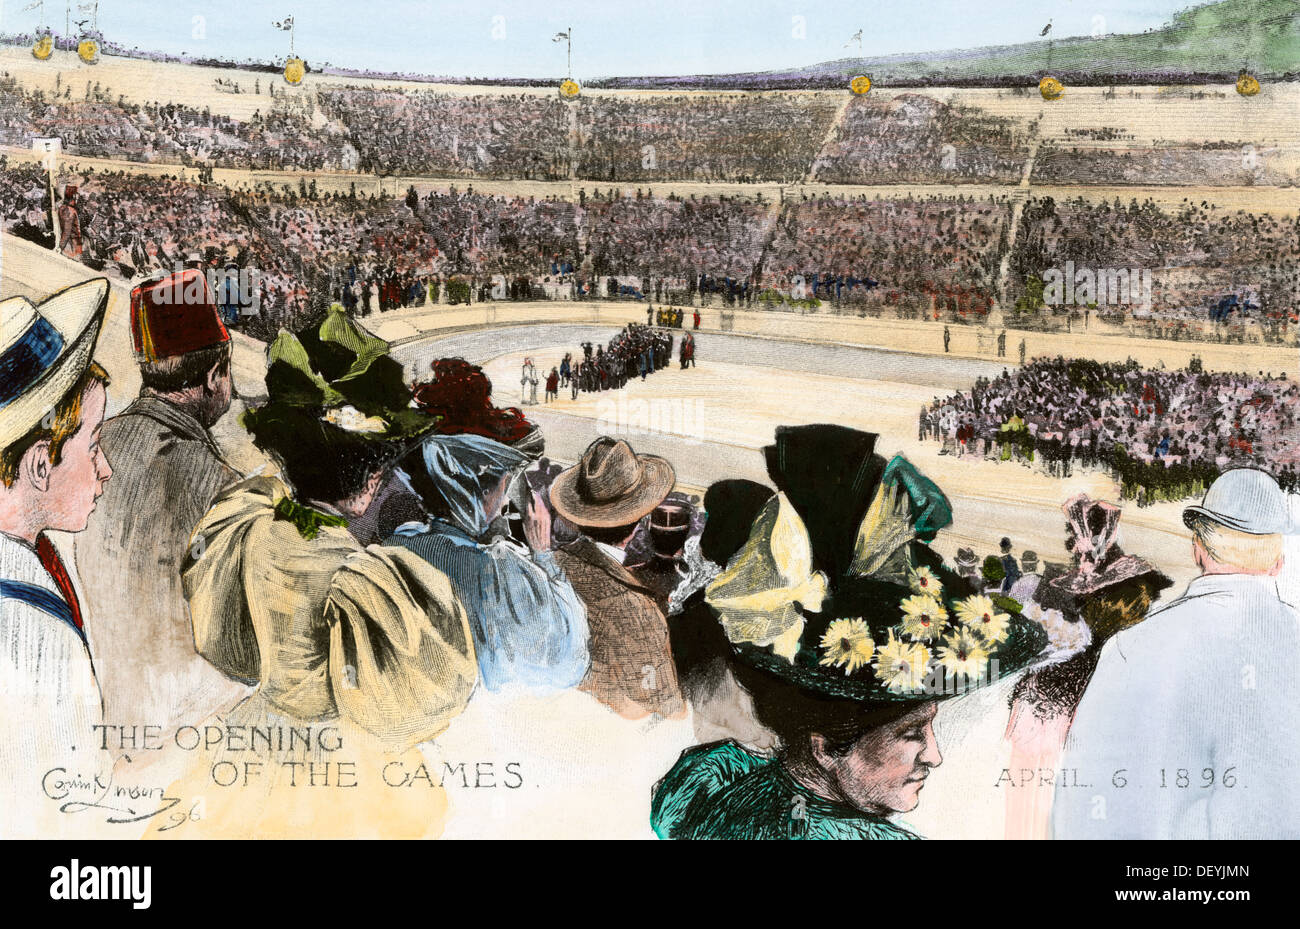 Opening ceremonies of the first modern Olympic Games in Athens, Greece, Hand-colored woodcut - Stock Image